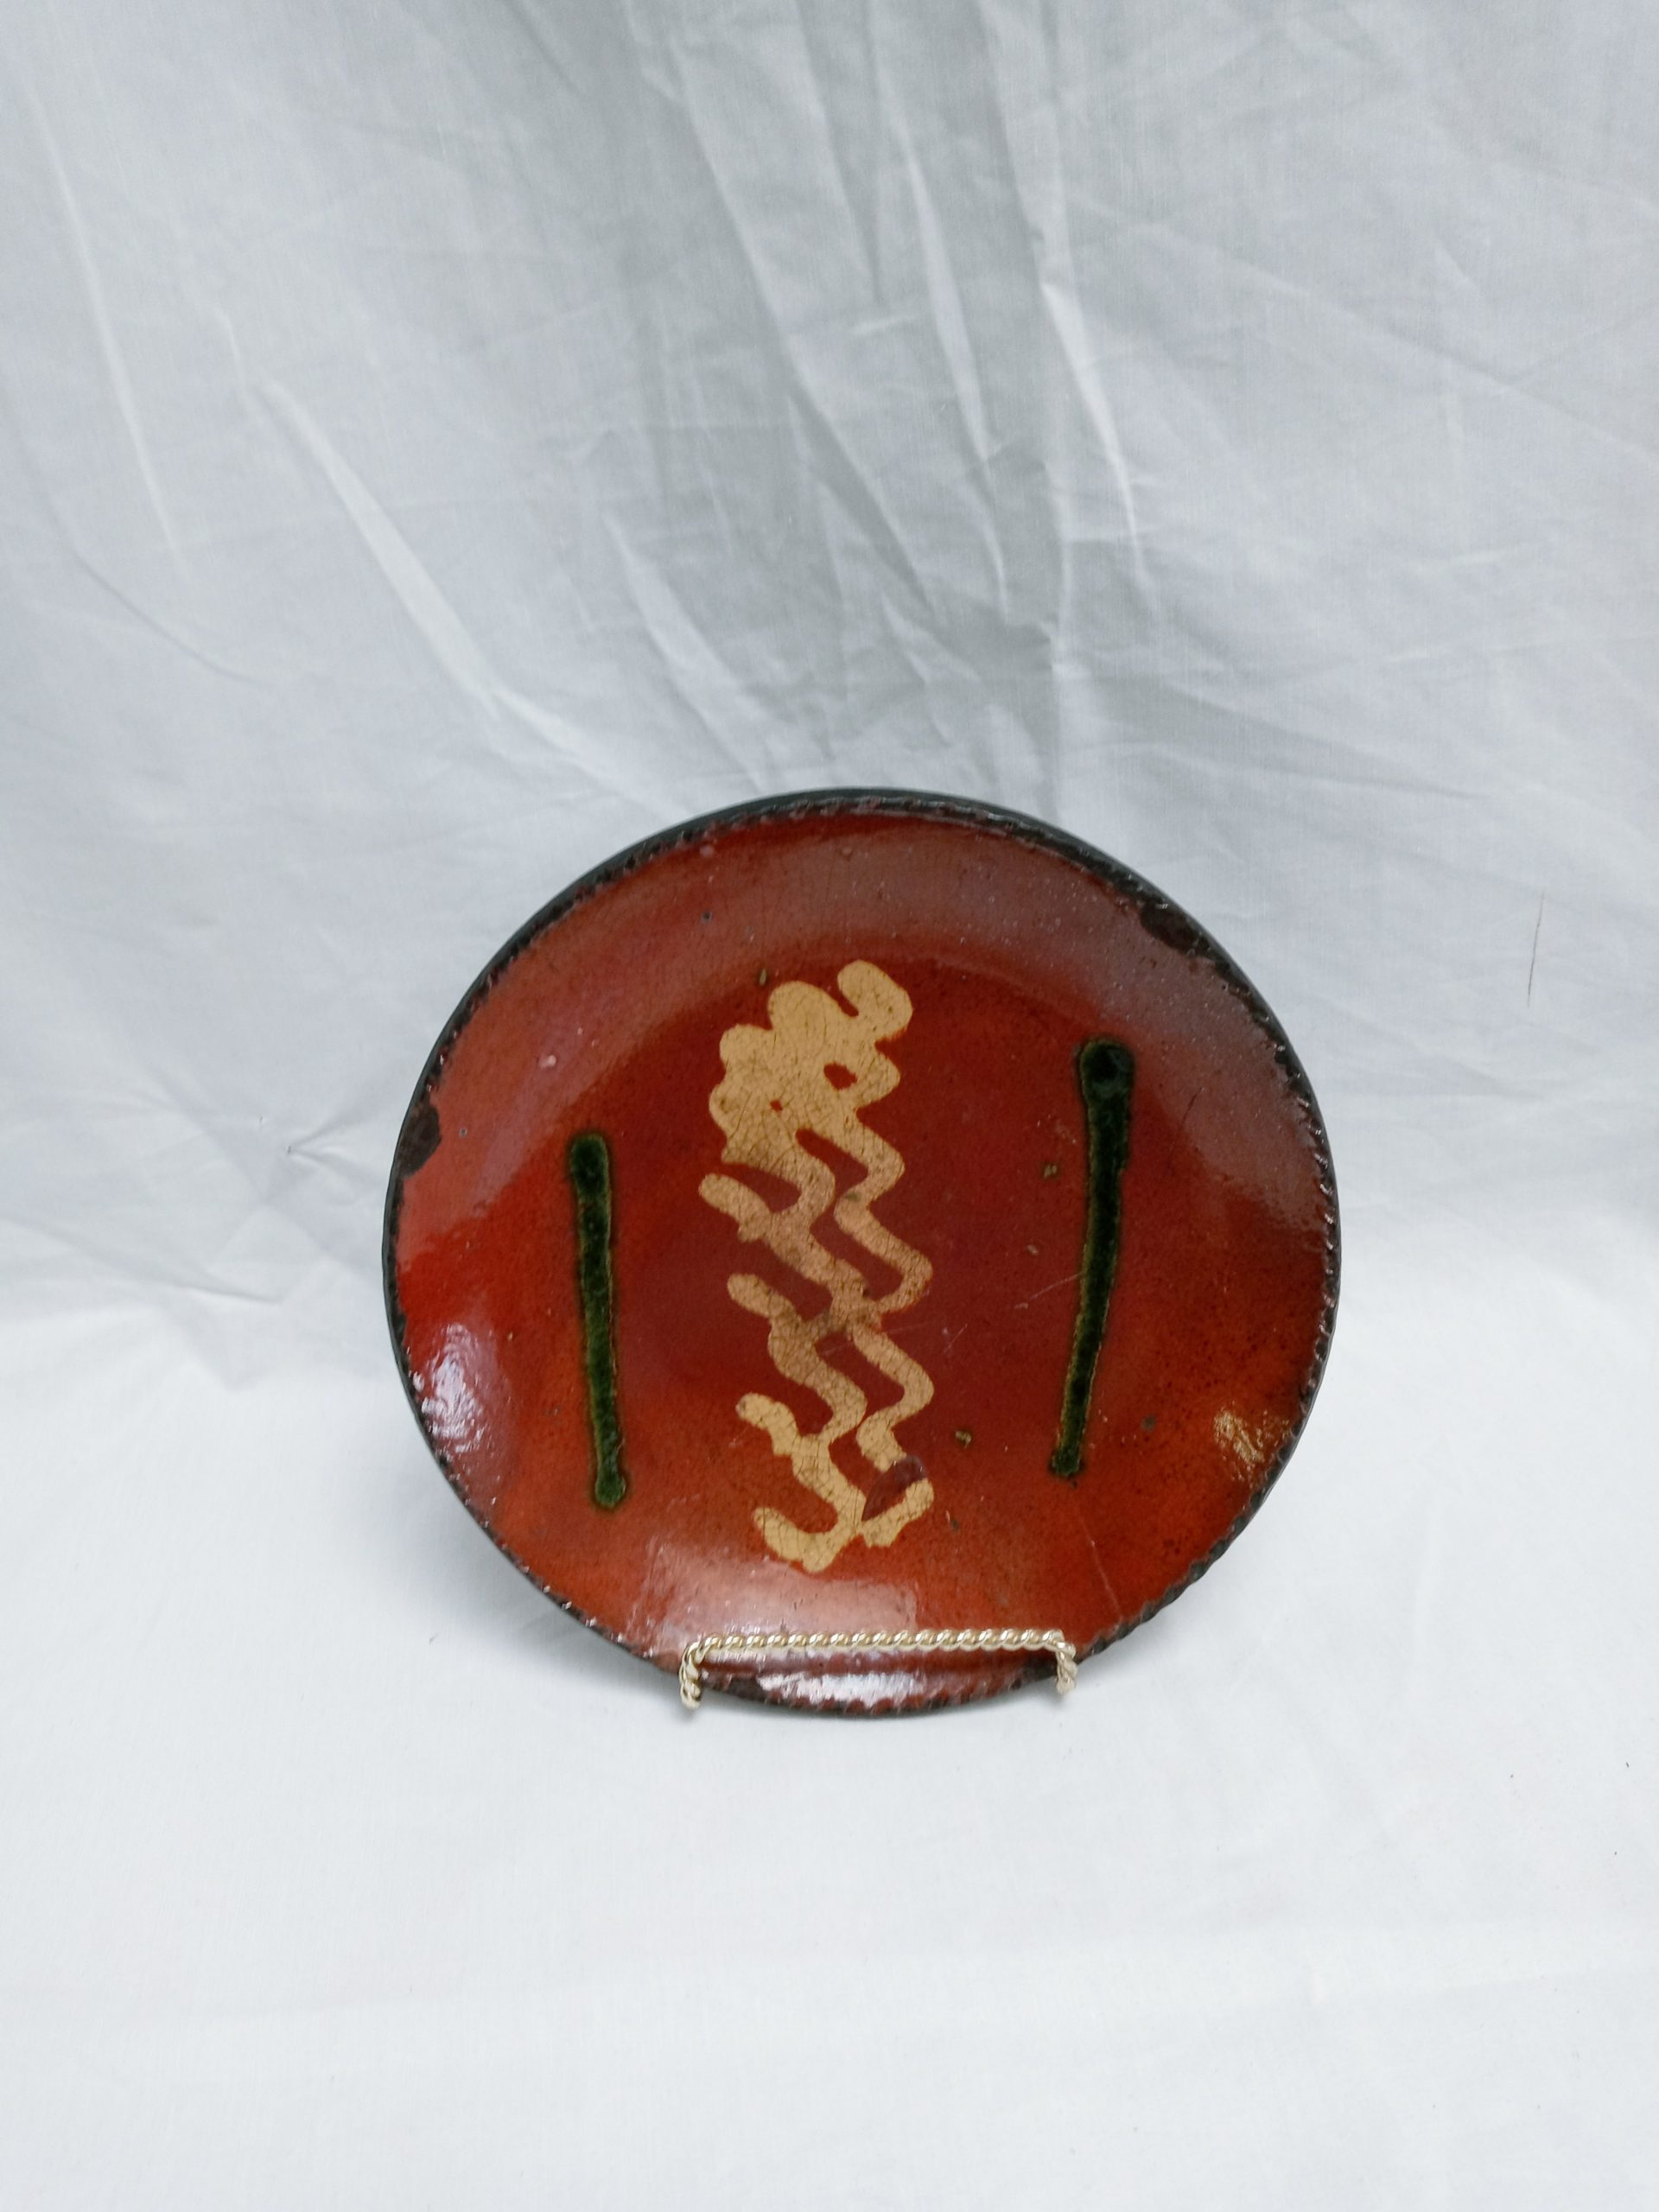 27-17343 Pennsylvania Redware Pottery Plate, yellow and green slip decoration. Image